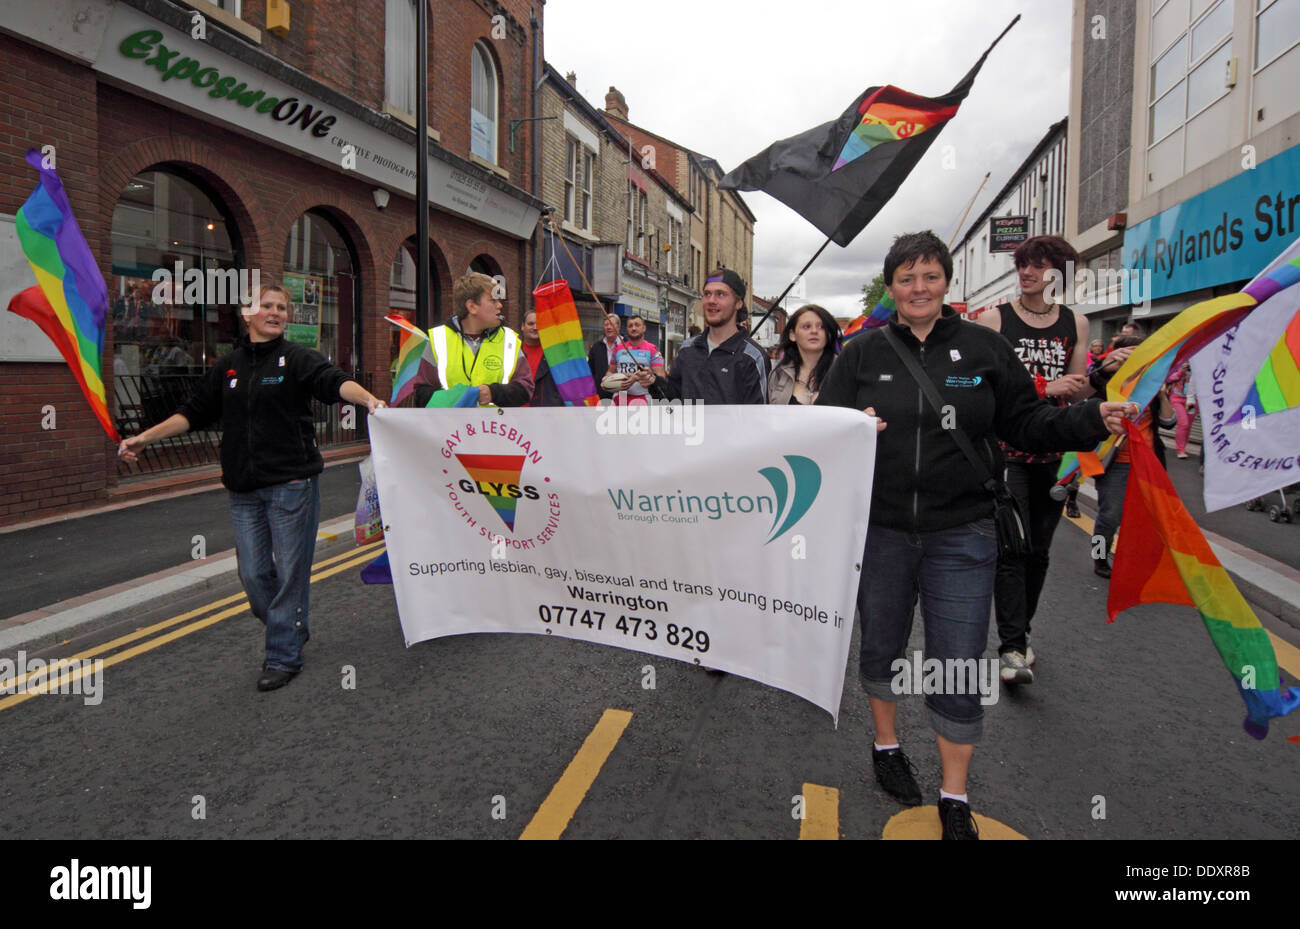 England,WA1,UK,GB,Great,britain,British,gay,lesbian,trans,transgender,LGBT,Bi,Bi-sexual,bisexual,people,men,women,marching,rights,WarringtonPride,march,marches,WBC,borough,council,unitary,local,authority,GGHT,golden,gates,housing,trust,events,celebrating,event,annual,yearly,flag,7th,seventh,gotonysmith,Warington,gayrights,Sep,Sept,Stonewall,town,demonstrate,demonstrators,demonstrator,Liberation,Front,GLF,gayness,gayboy,boy,boys,girls,girl,population,world,worldpride,Canal,St,street,rugby,player,players,team,cup,rugbyworldcup,07/09/2013,09/07/2013,Rylands,Palmyra,Sq,square,Bond,Bridge,WarringtonLGBT,LGBTWarrington,members,volunteers,stigma,services,service,HIV,aids,sexuality,sex,lgbtwarrington.co.uk,WA1,1JL,WA11JL,Buy Pictures of,Buy Images Of